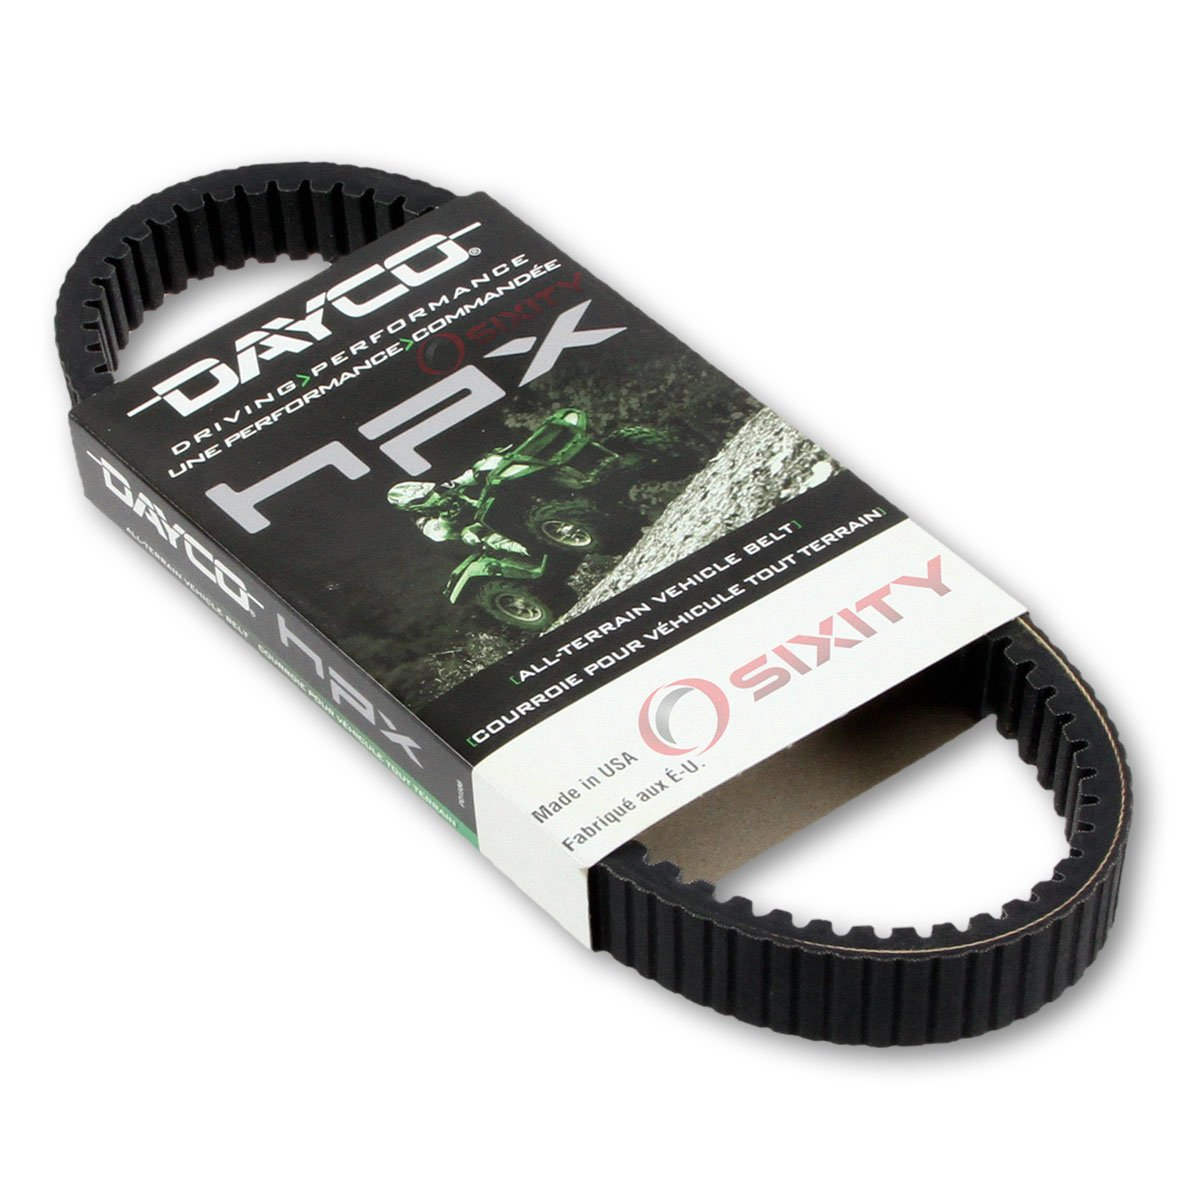 2005-2006 for Polaris Sportsman 800 EFI Drive Belt Dayco HPX ATV OEM Upgrade Replacement Transmission Belts